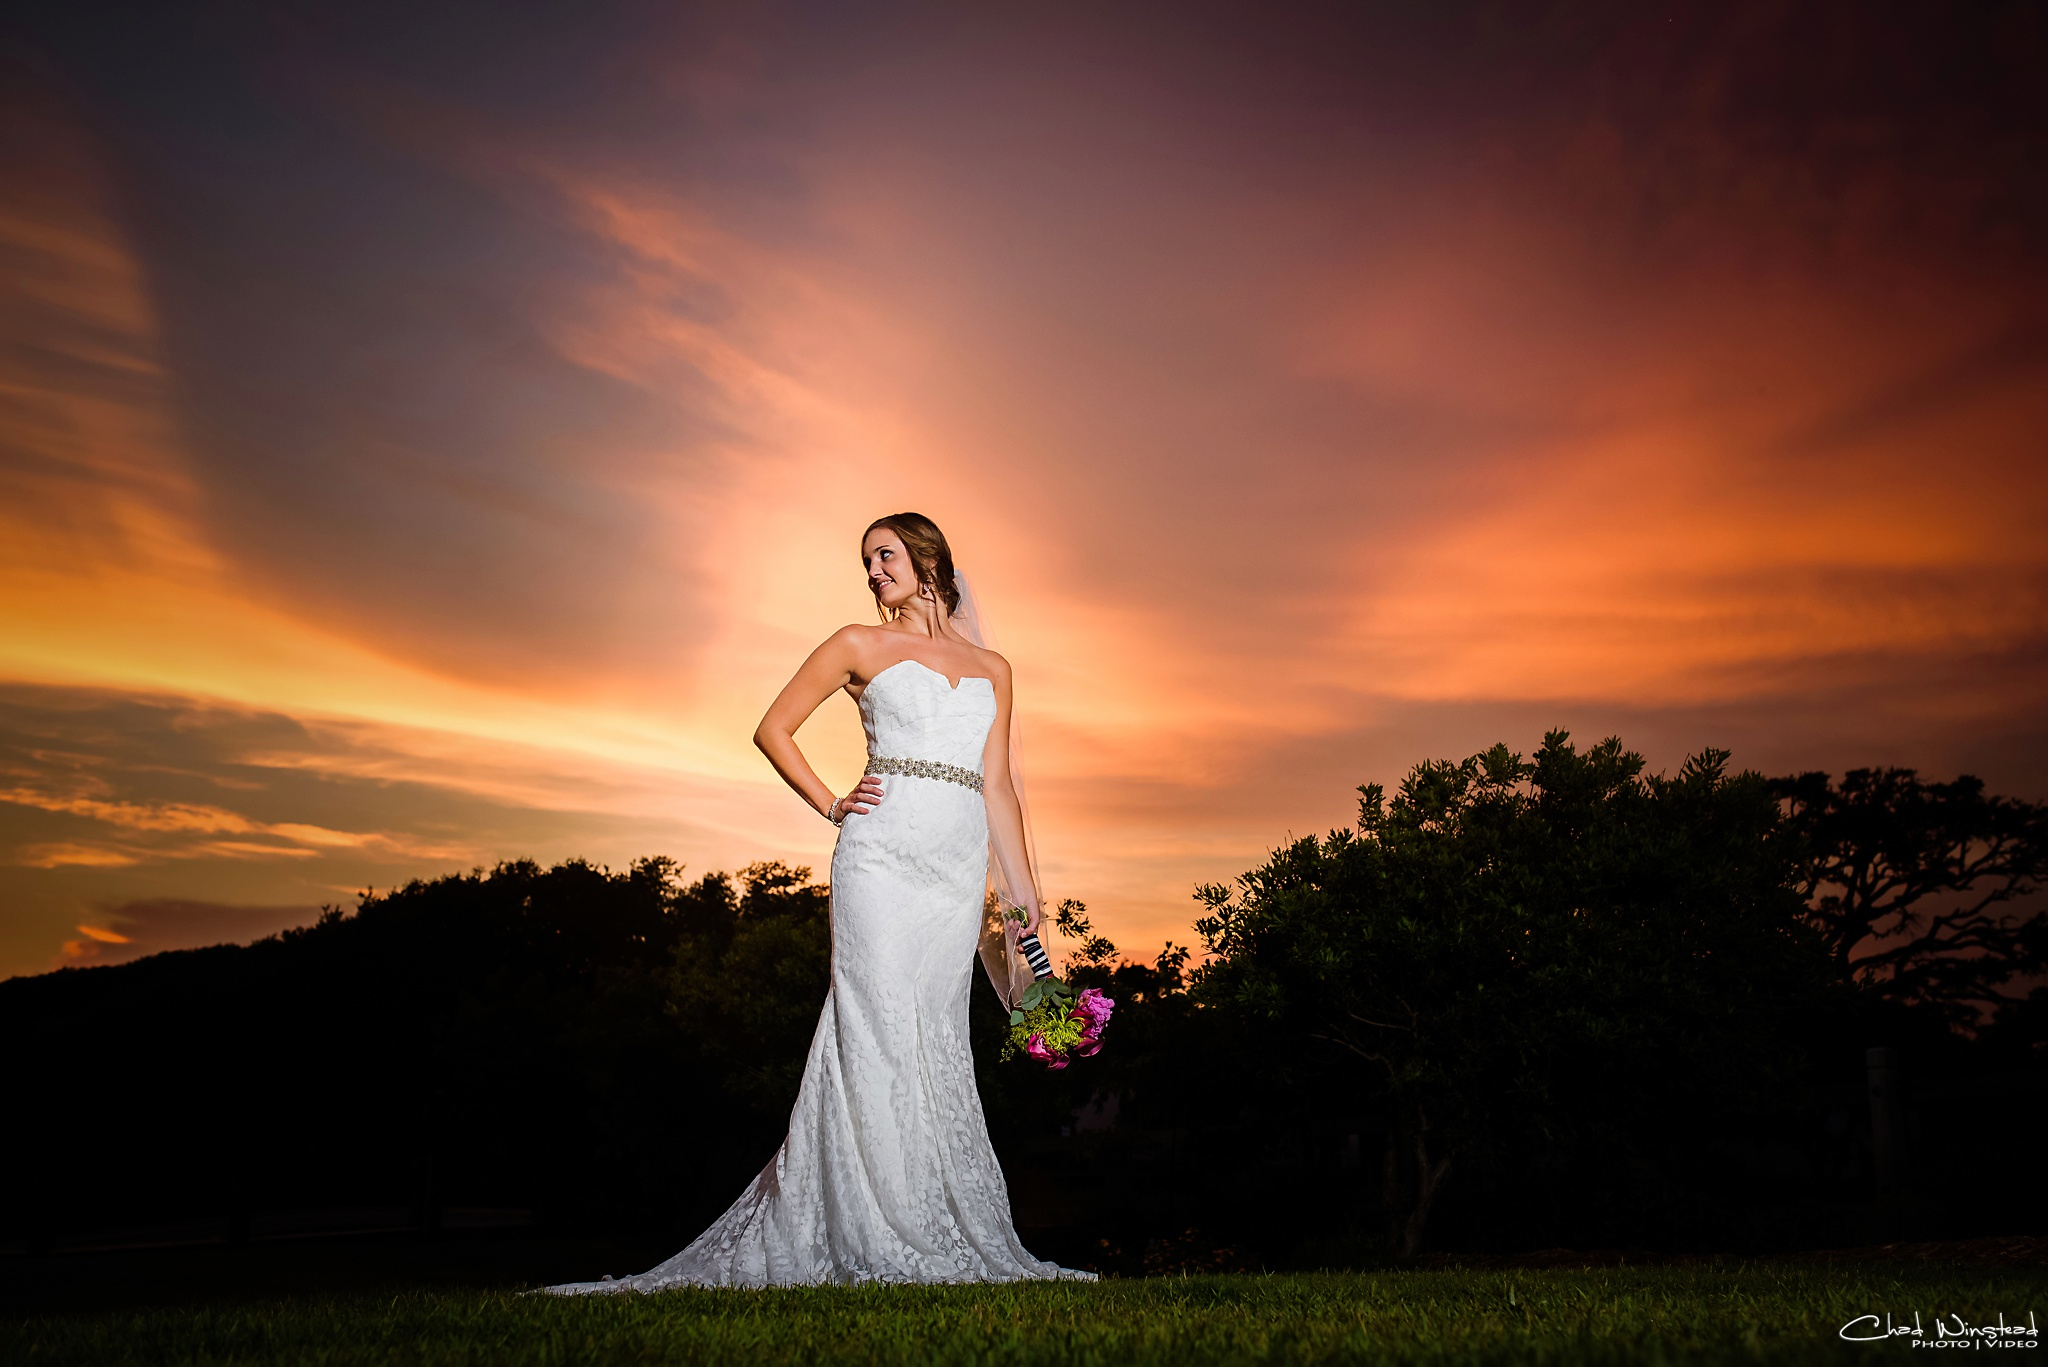 Kelly's Bridal Portraits at the Boathouse at Front Street Village in downtown Beaufort, NC by Chad Winstead Photography